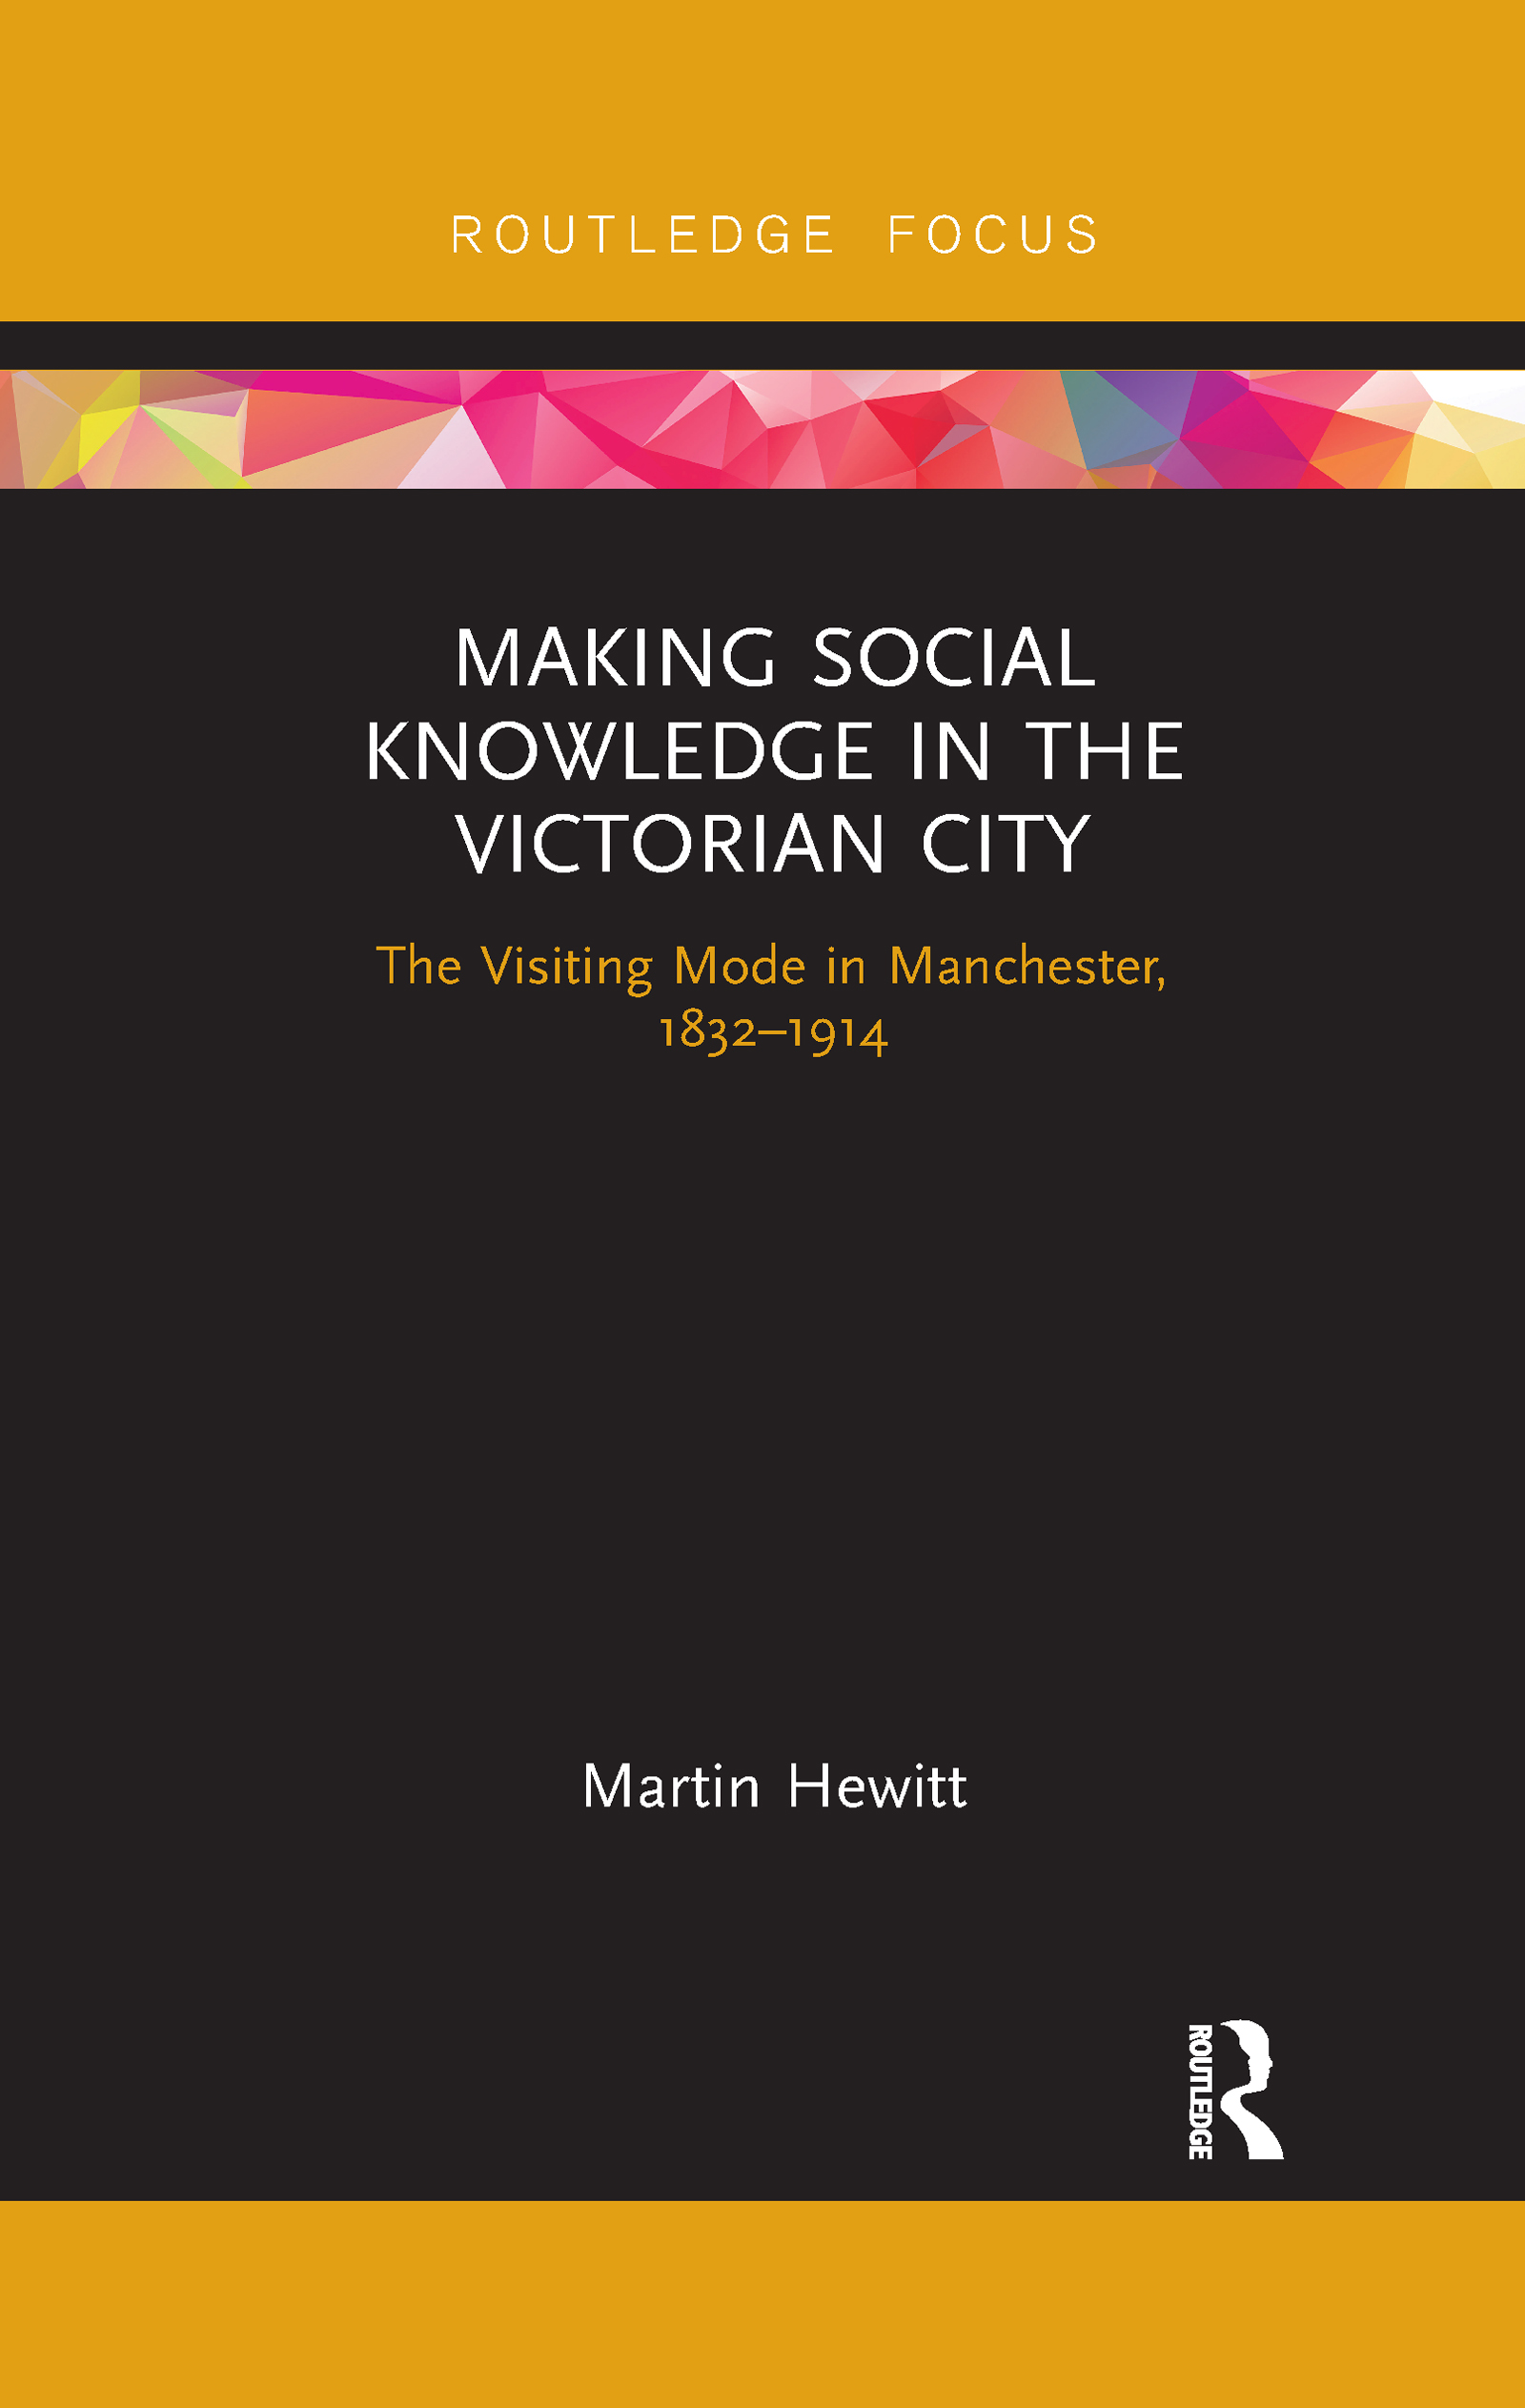 Making Social Knowledge in the Victorian City